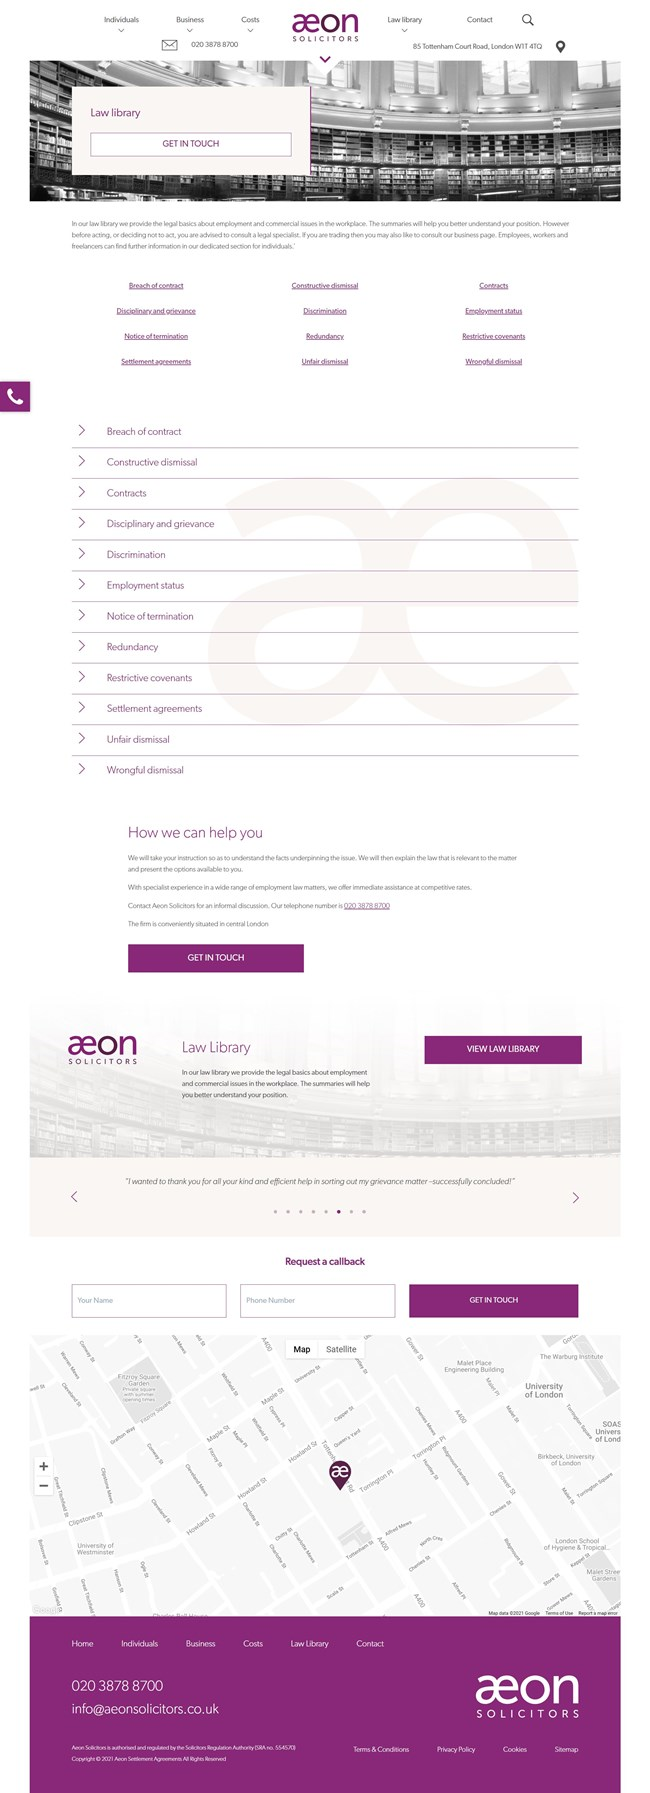 Aeon Solicitors Website Design and WordPress Web Development SP005 Law Library